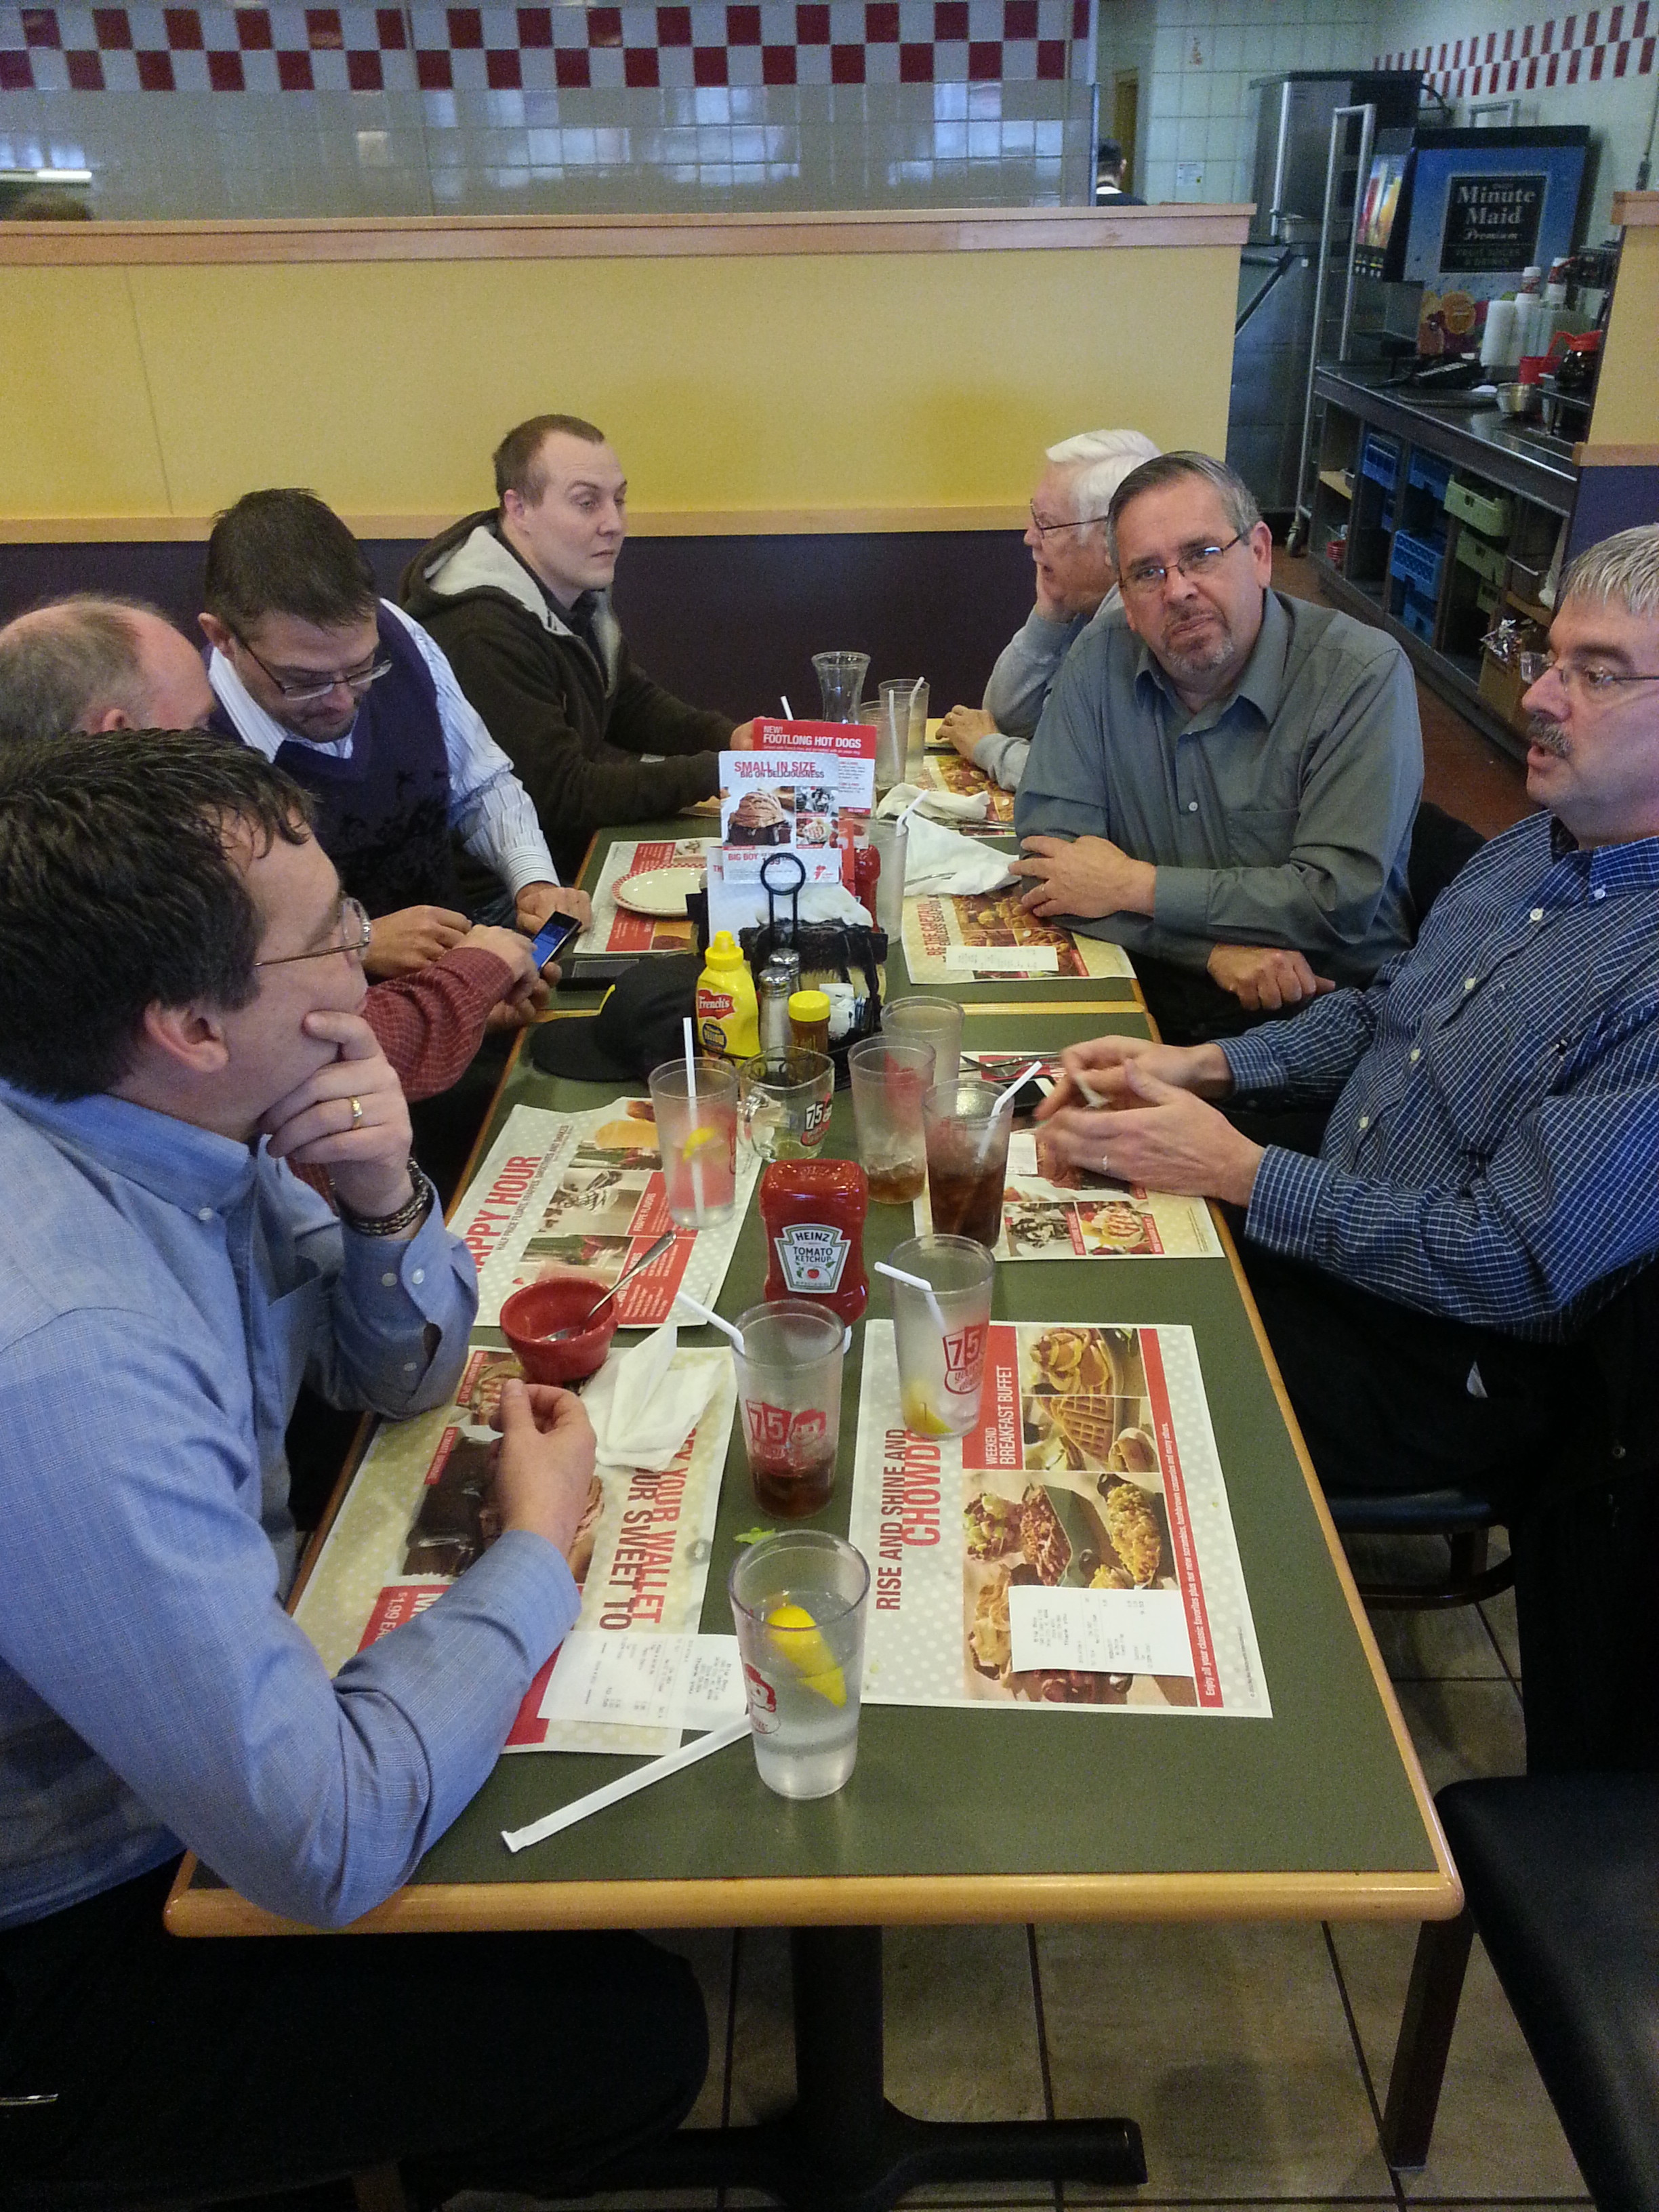 Pastor lunch in Imlay City